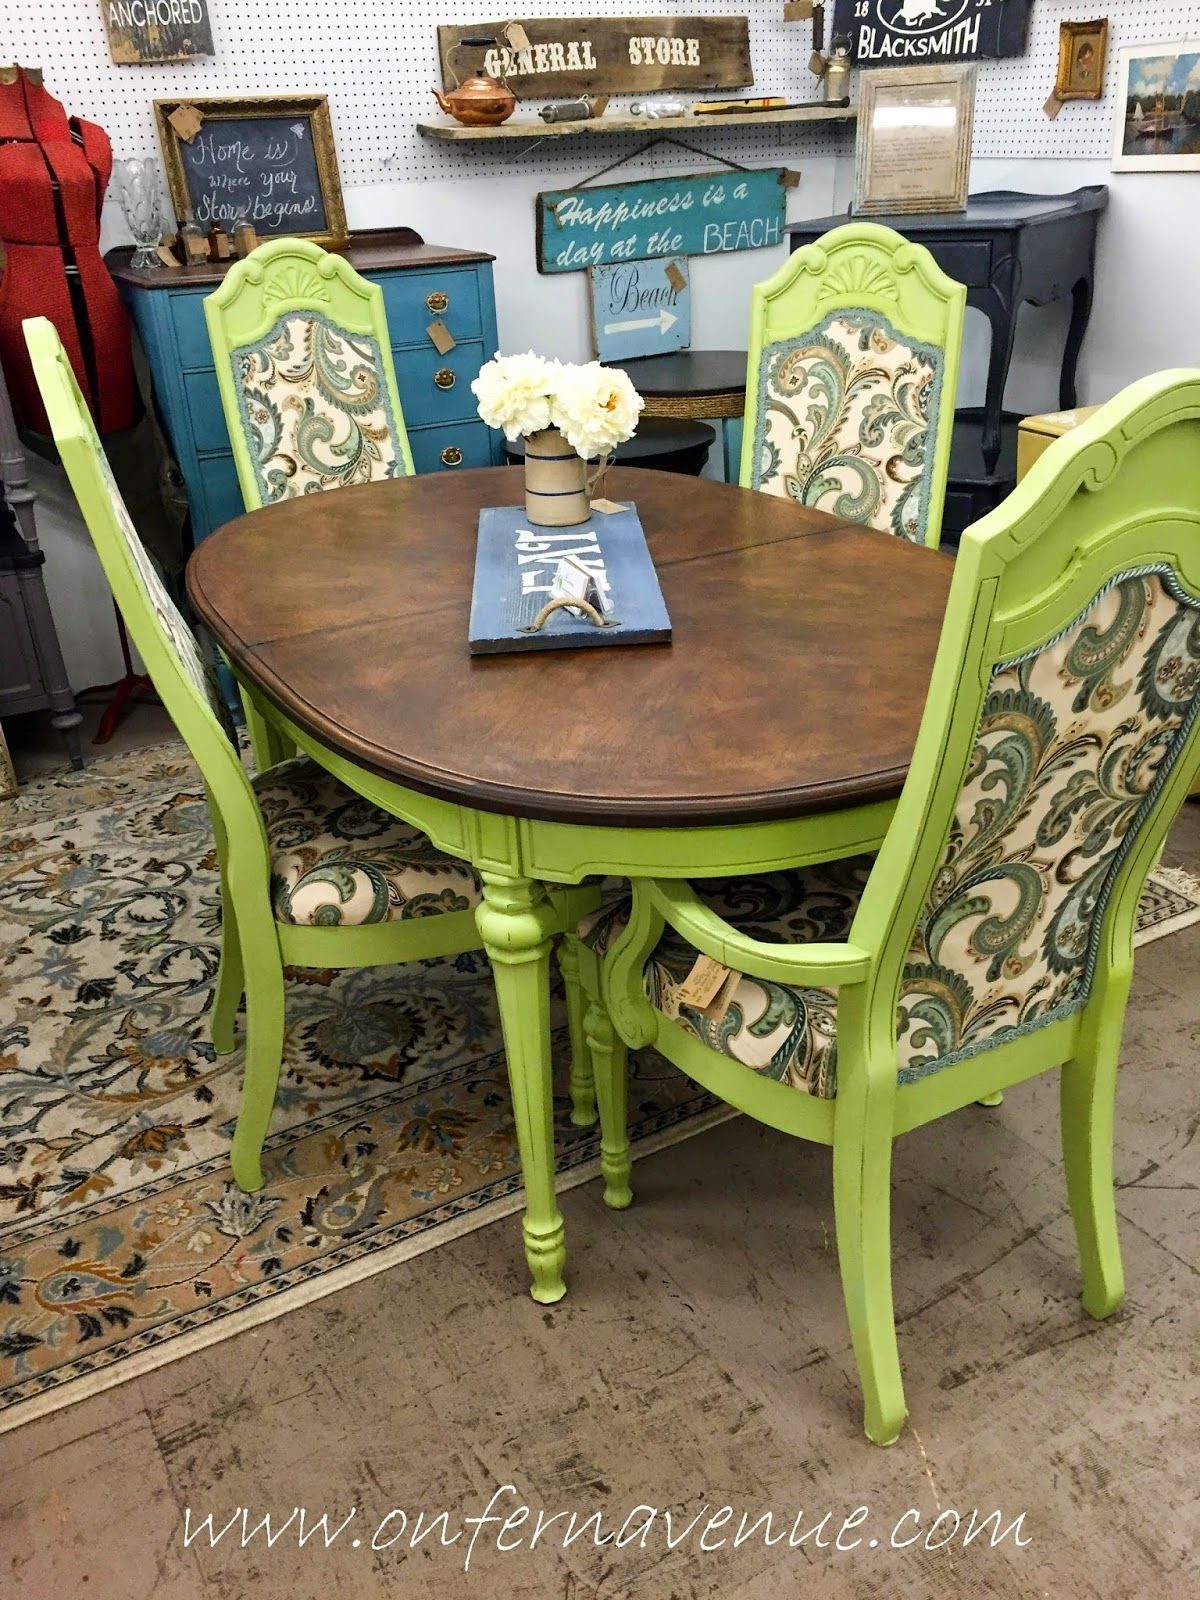 Tremendous 30 Inspiration Photo Of Dining Room Repurpose Table Diy Unemploymentrelief Wooden Chair Designs For Living Room Unemploymentrelieforg